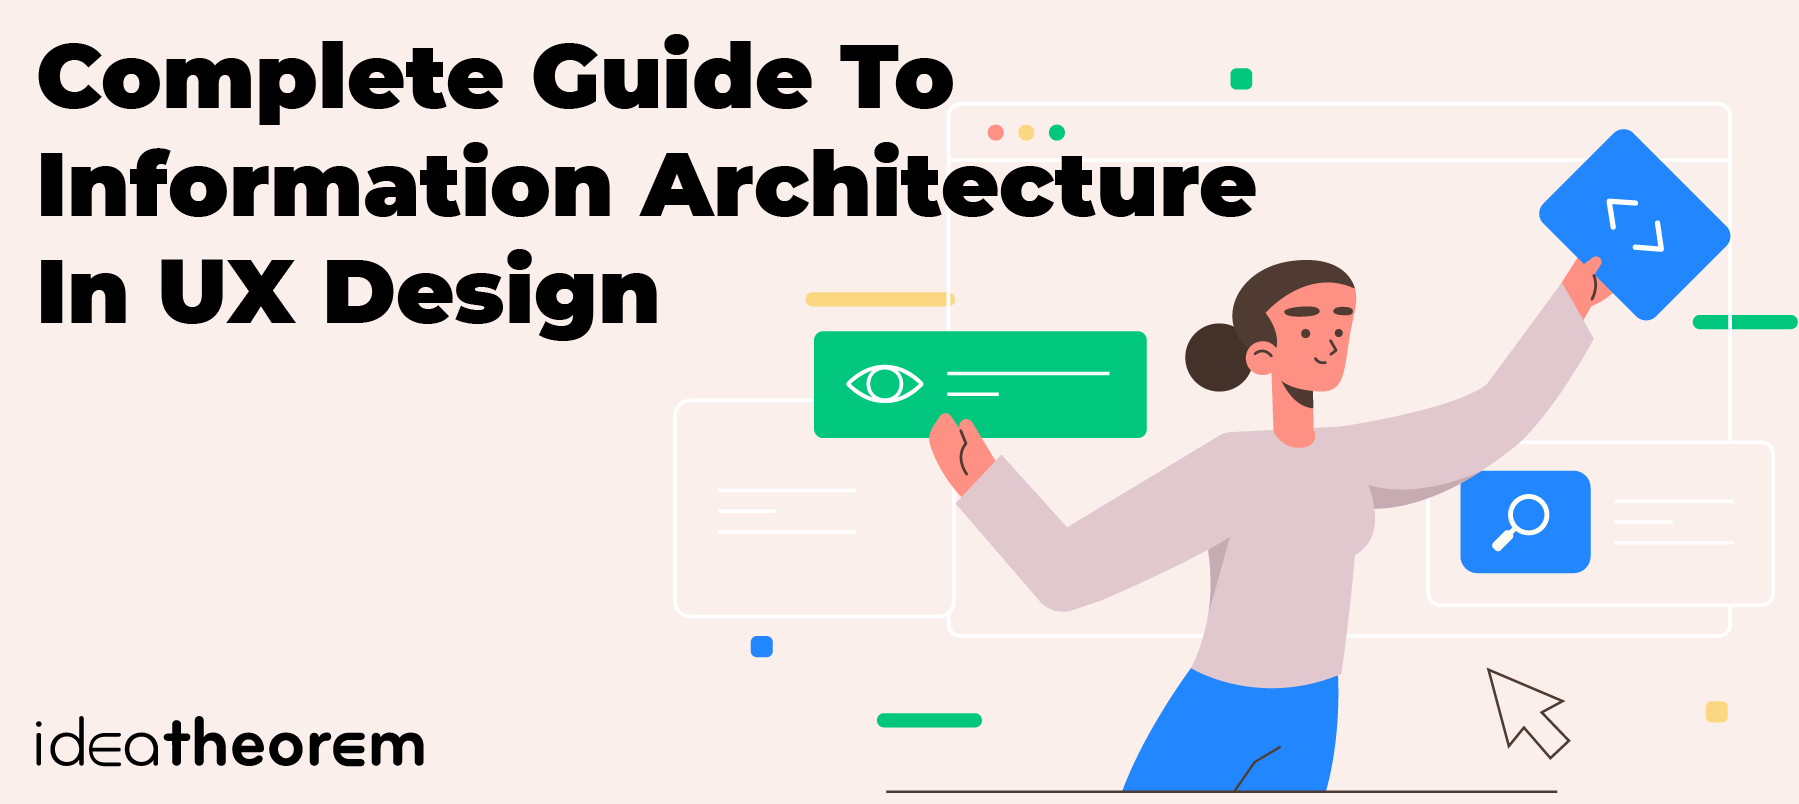 Complete Guide To Information Architecture In UX Design